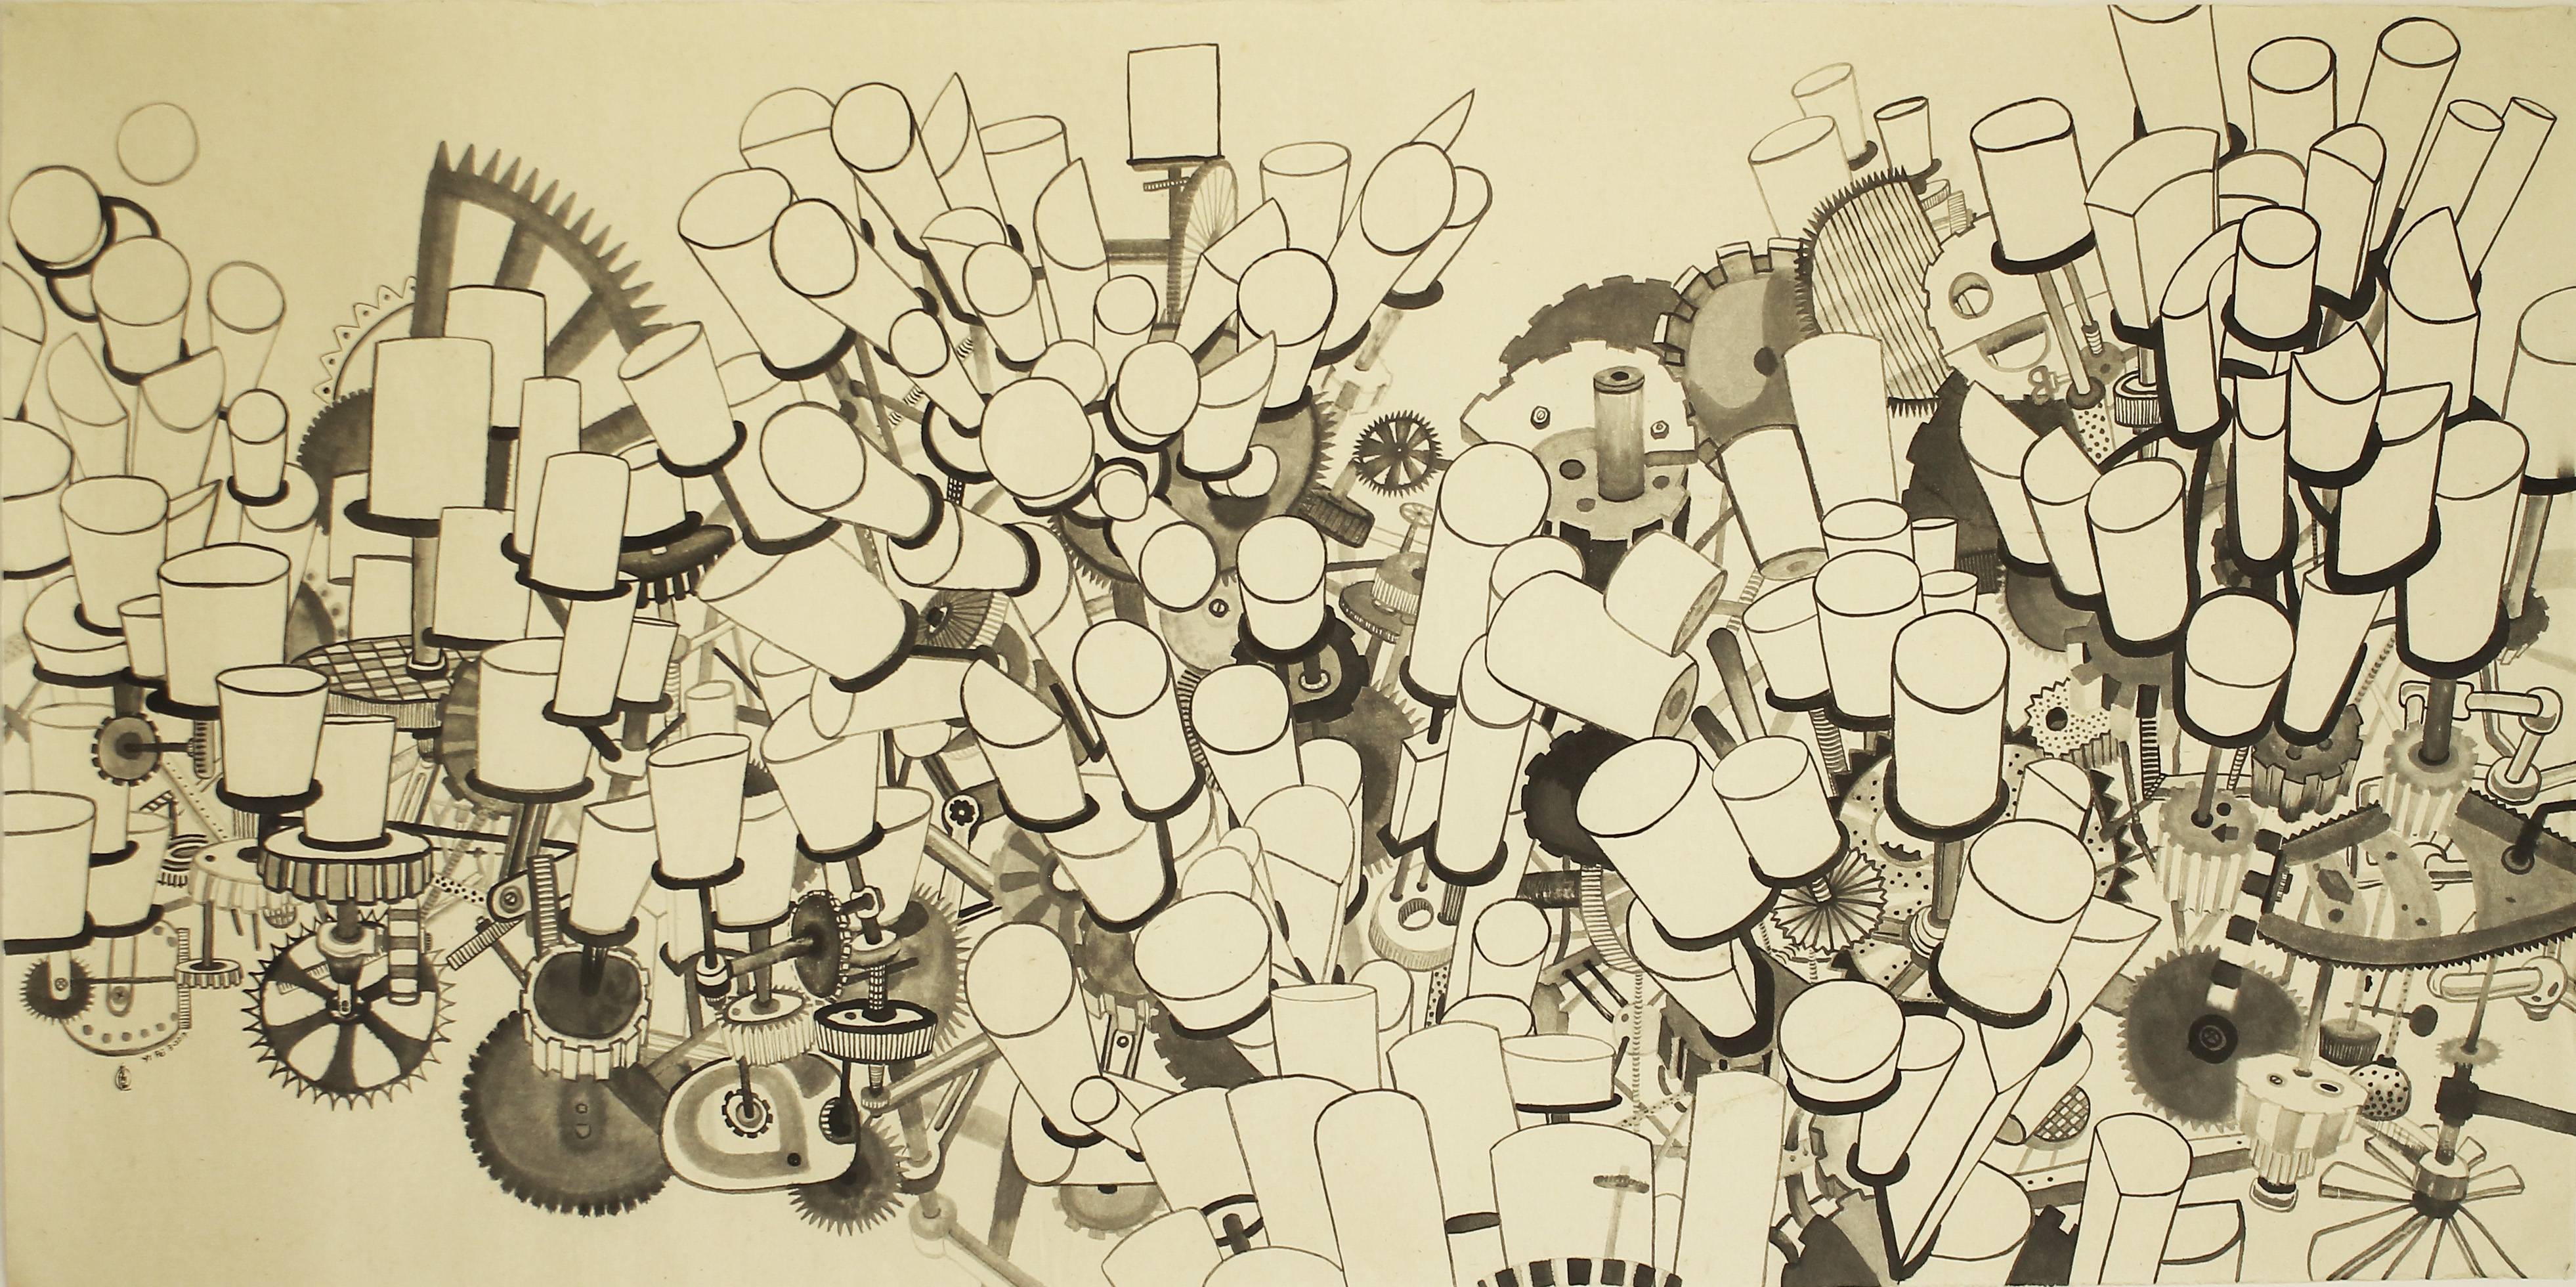 LOH Yi Pei, The Spinning City,ink on paper, 65x129.5cm,2017